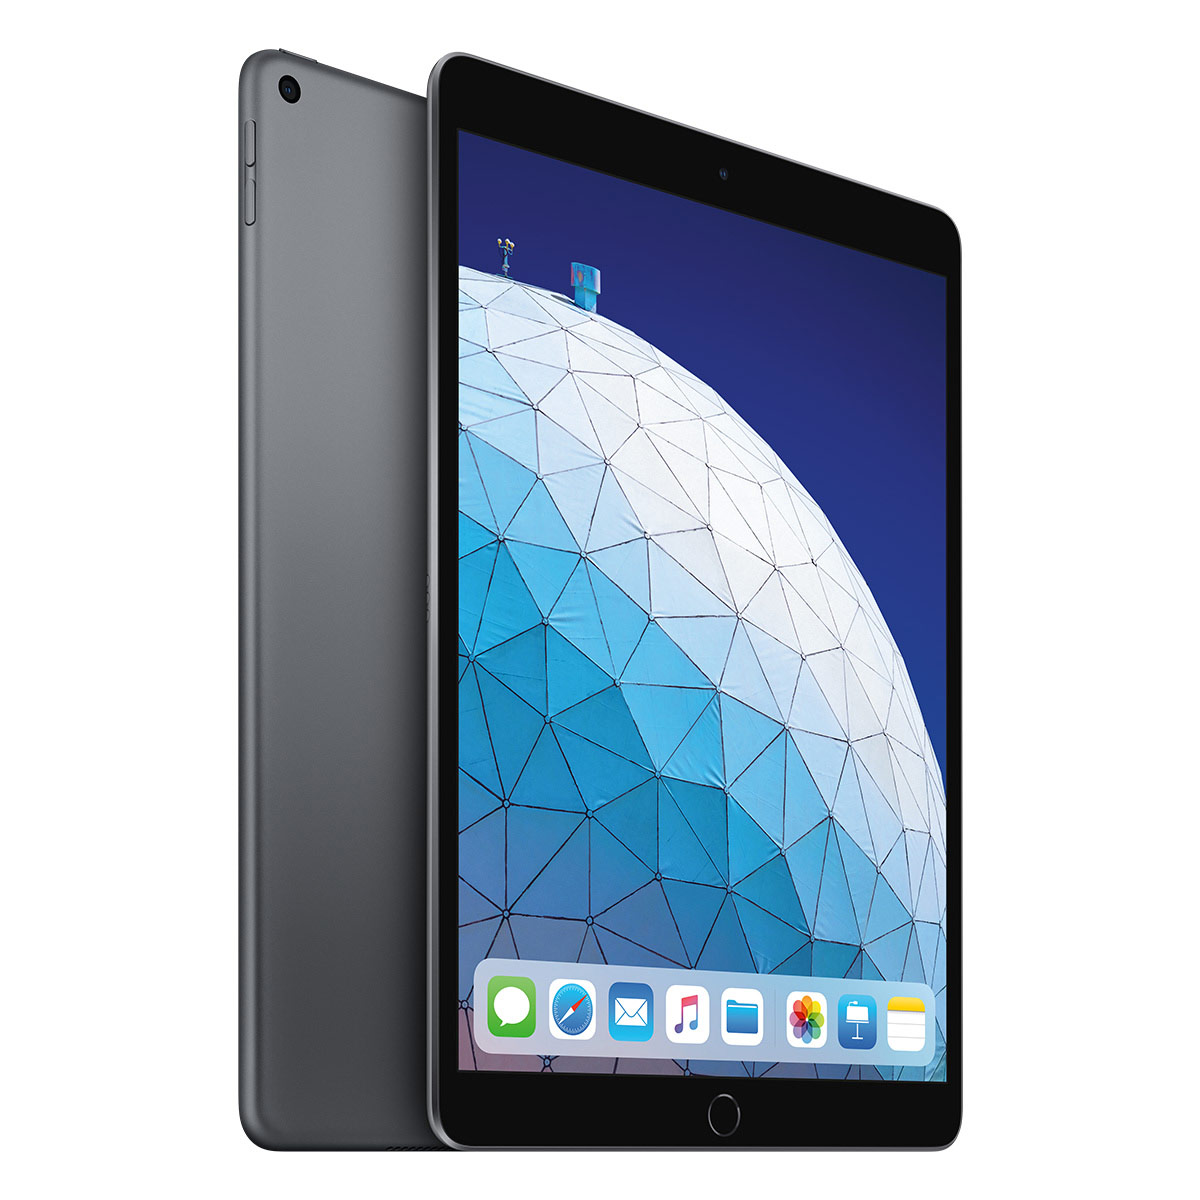 "Education Apple iPad Air 10.5"" 64GB WiFi - Space Grey"